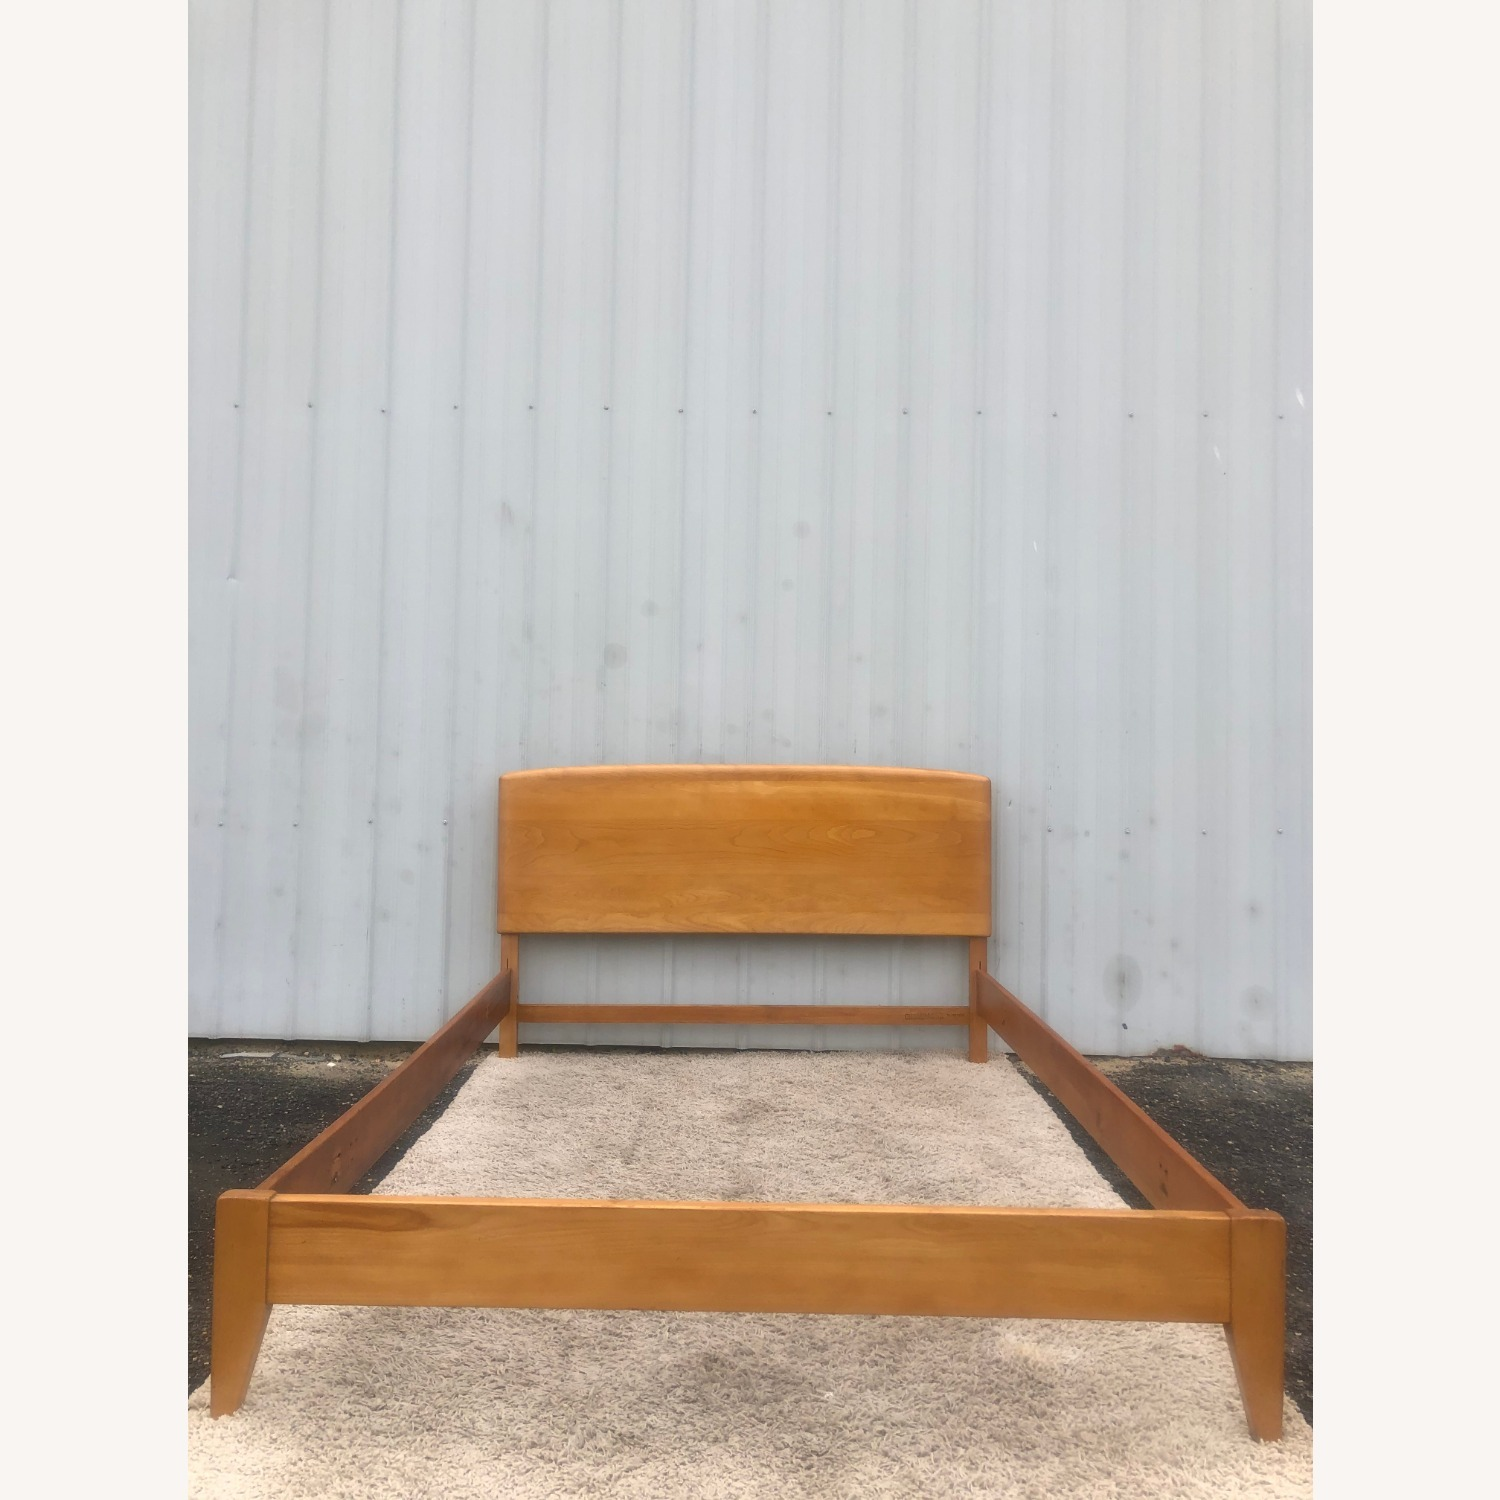 MCM Full/Double Bed Frame by Heywood Wakefield - image-4